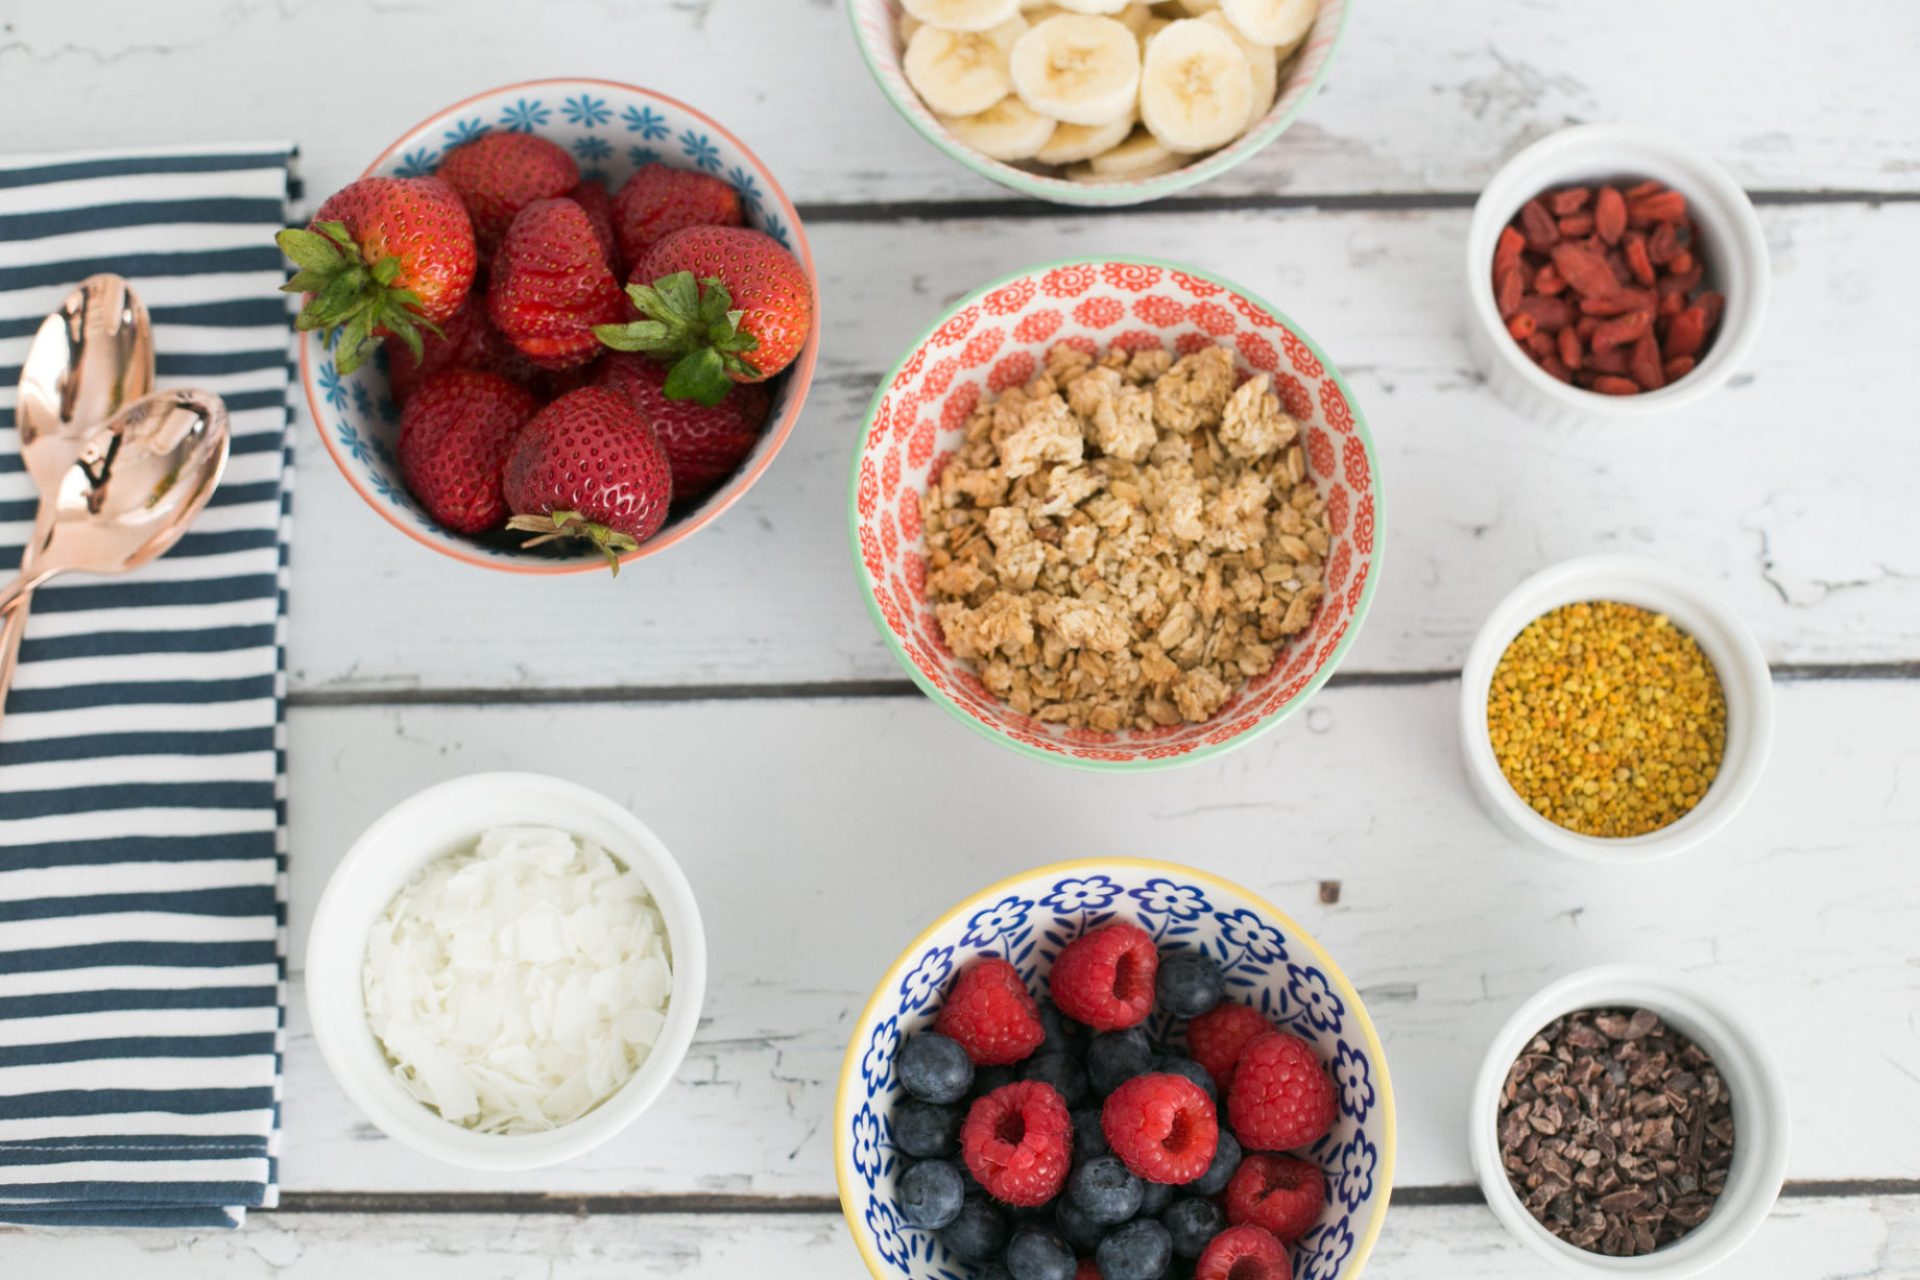 DIY acai bowl toppings